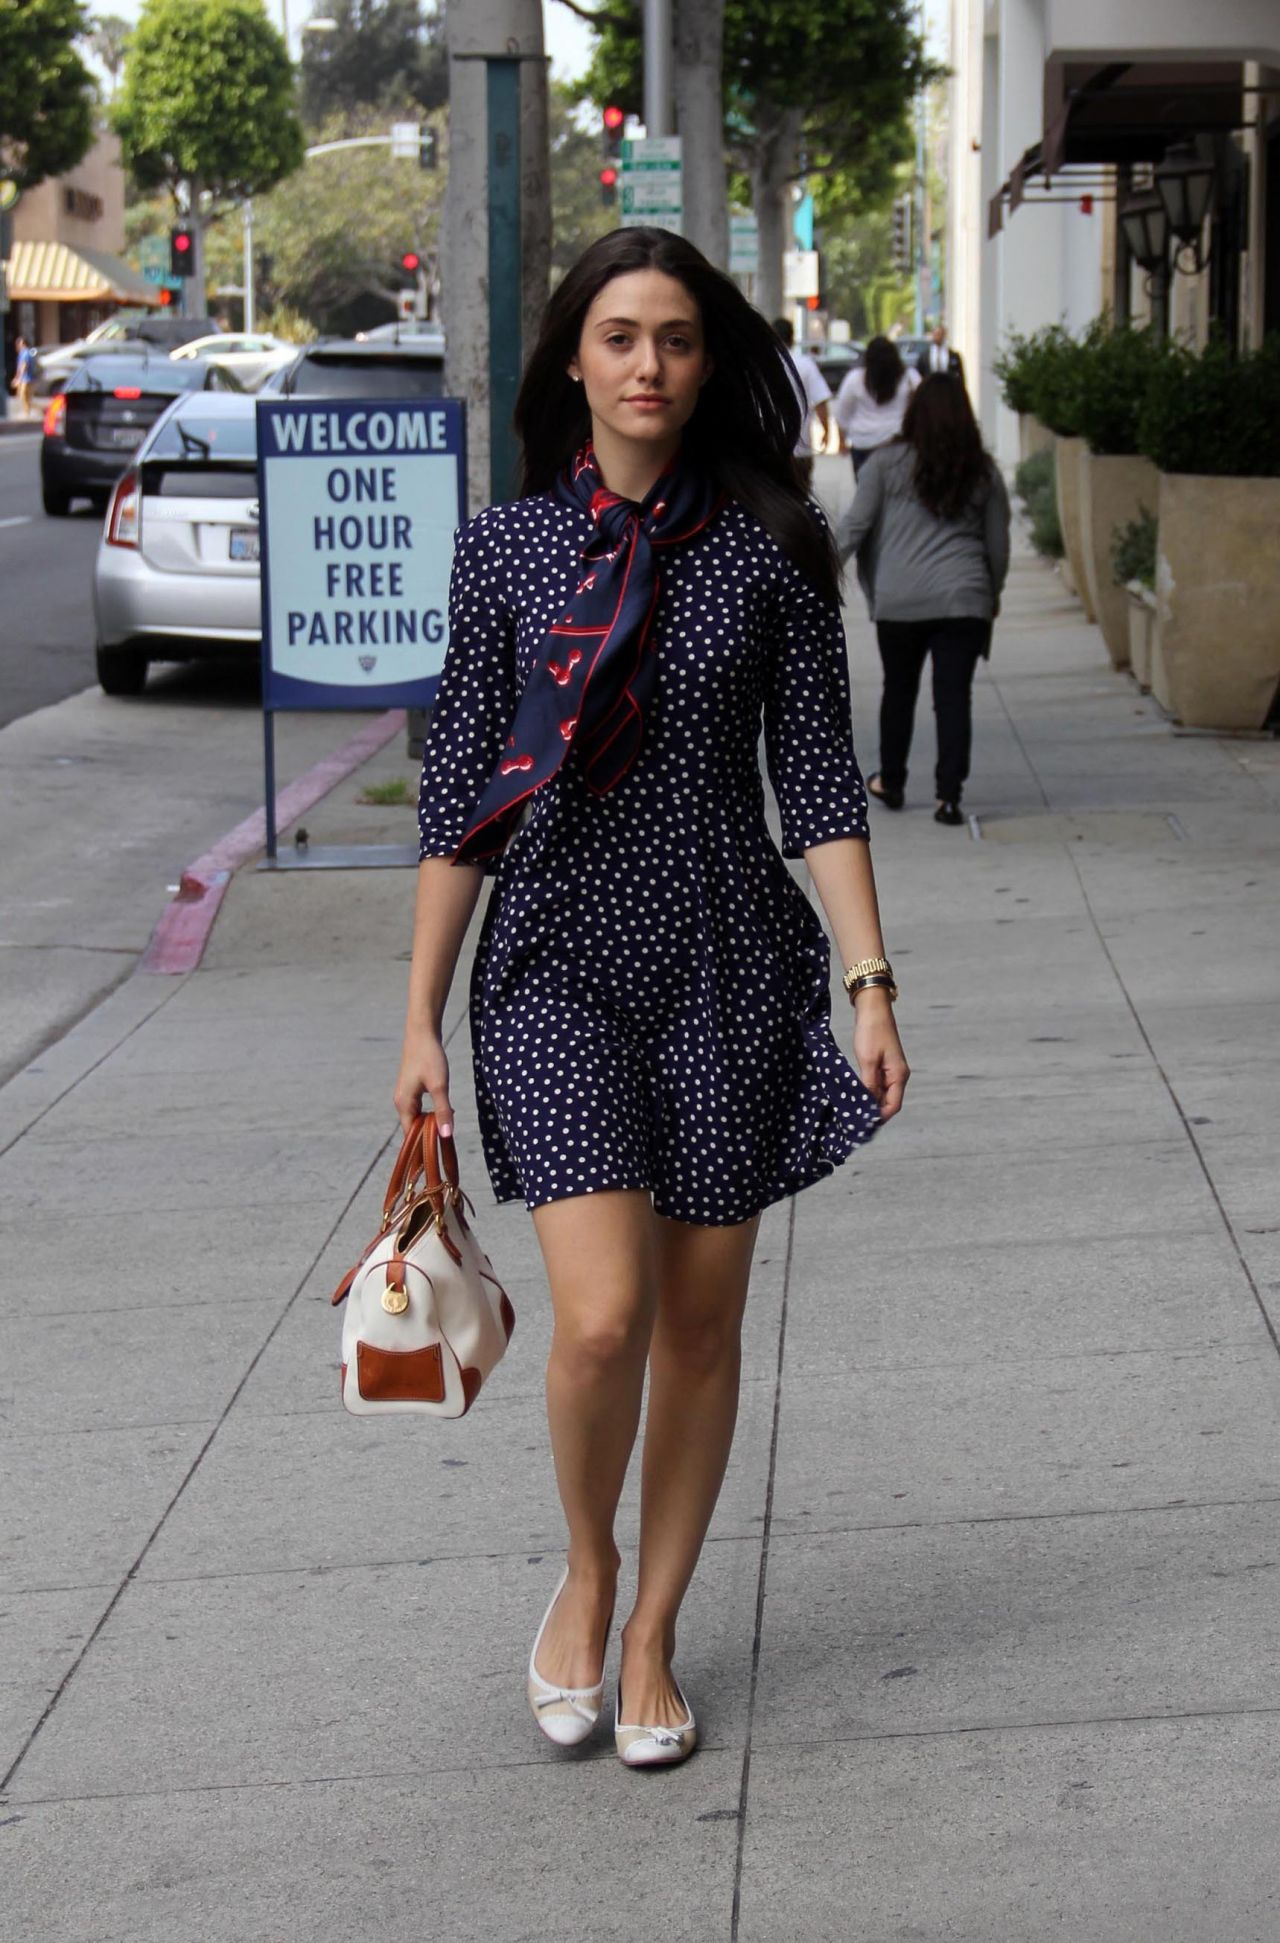 Emmy Rossum in Minidress - Out in Beverly Hills - March 2014